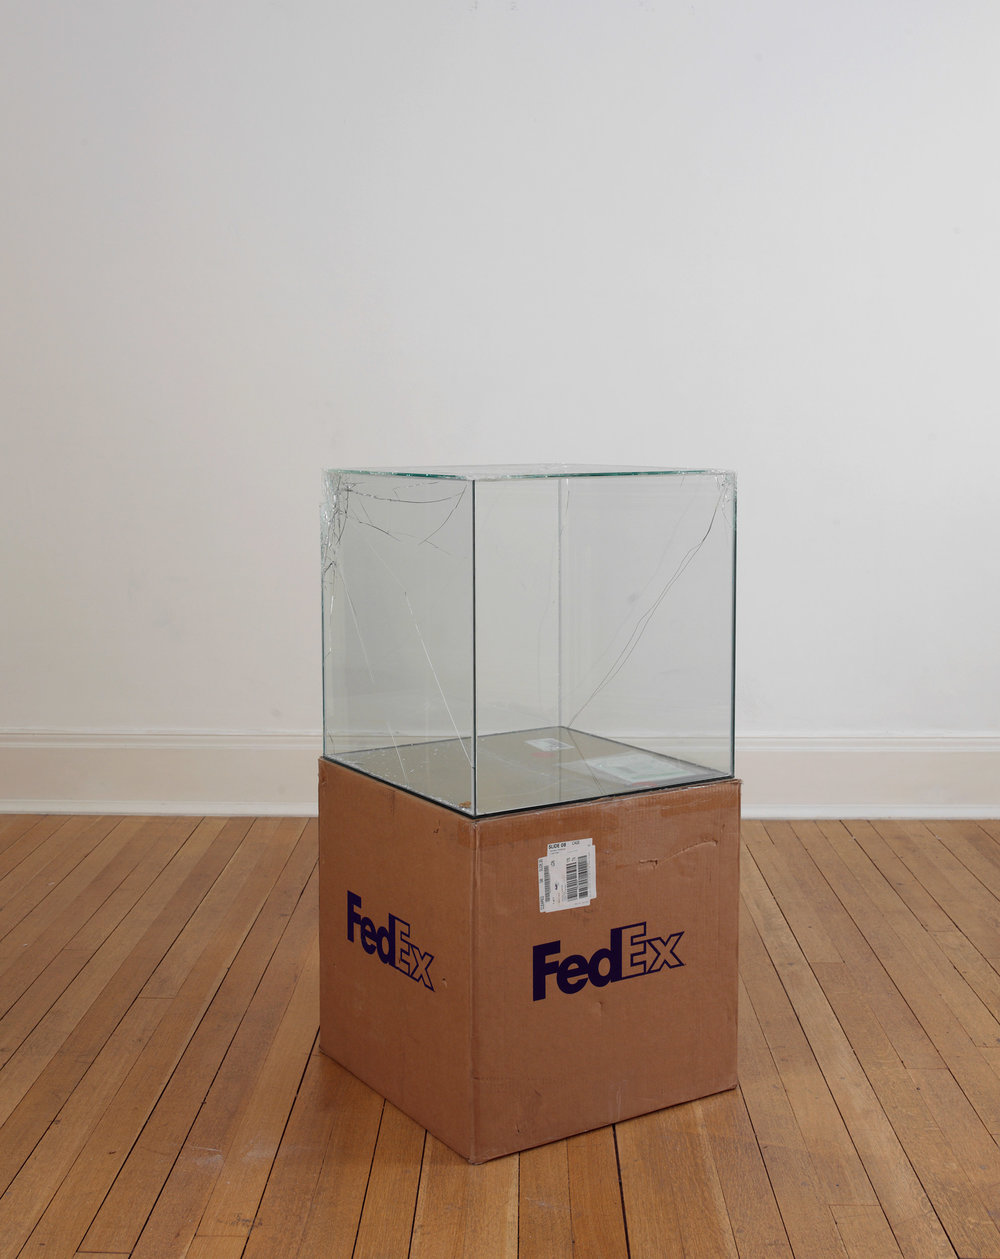 FedEx® Large Kraft Box  © 2008 FEDEX 330510 REV 6/08 GP, International Priority, Los Angeles–London trk#868587728050, October 02–05, 2009   2009–  Laminated glass, FedEx shipping box, accrued FedEx shipping and tracking labels, silicone, metal, tape  24 x 24 x 24 inches   FedEx Glass Works, 2007–    Production Stills, 2009